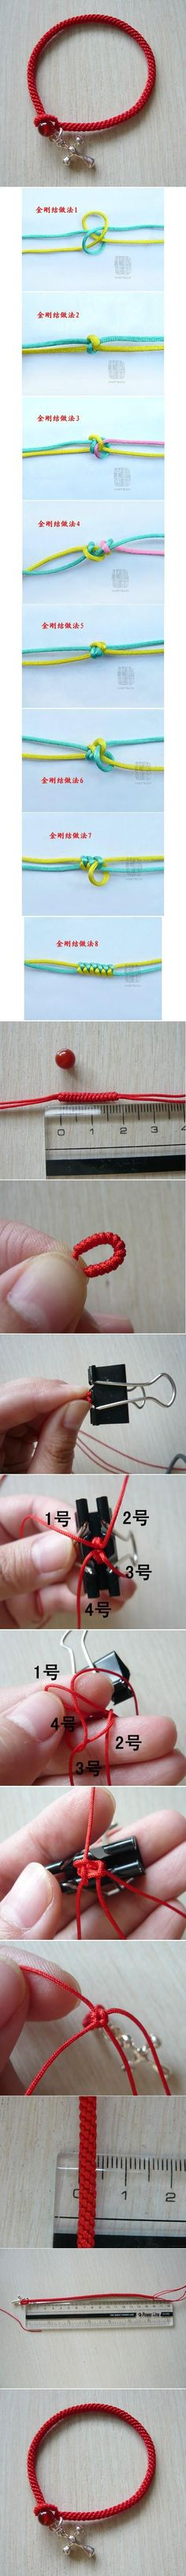 Design your own photo charms compatible with your pandora bracelets. DIY Easy Chinese Knot Bracelet - Was on a Kumihimo Board: http://www.pinterest.com/melacprm/kumihimo/